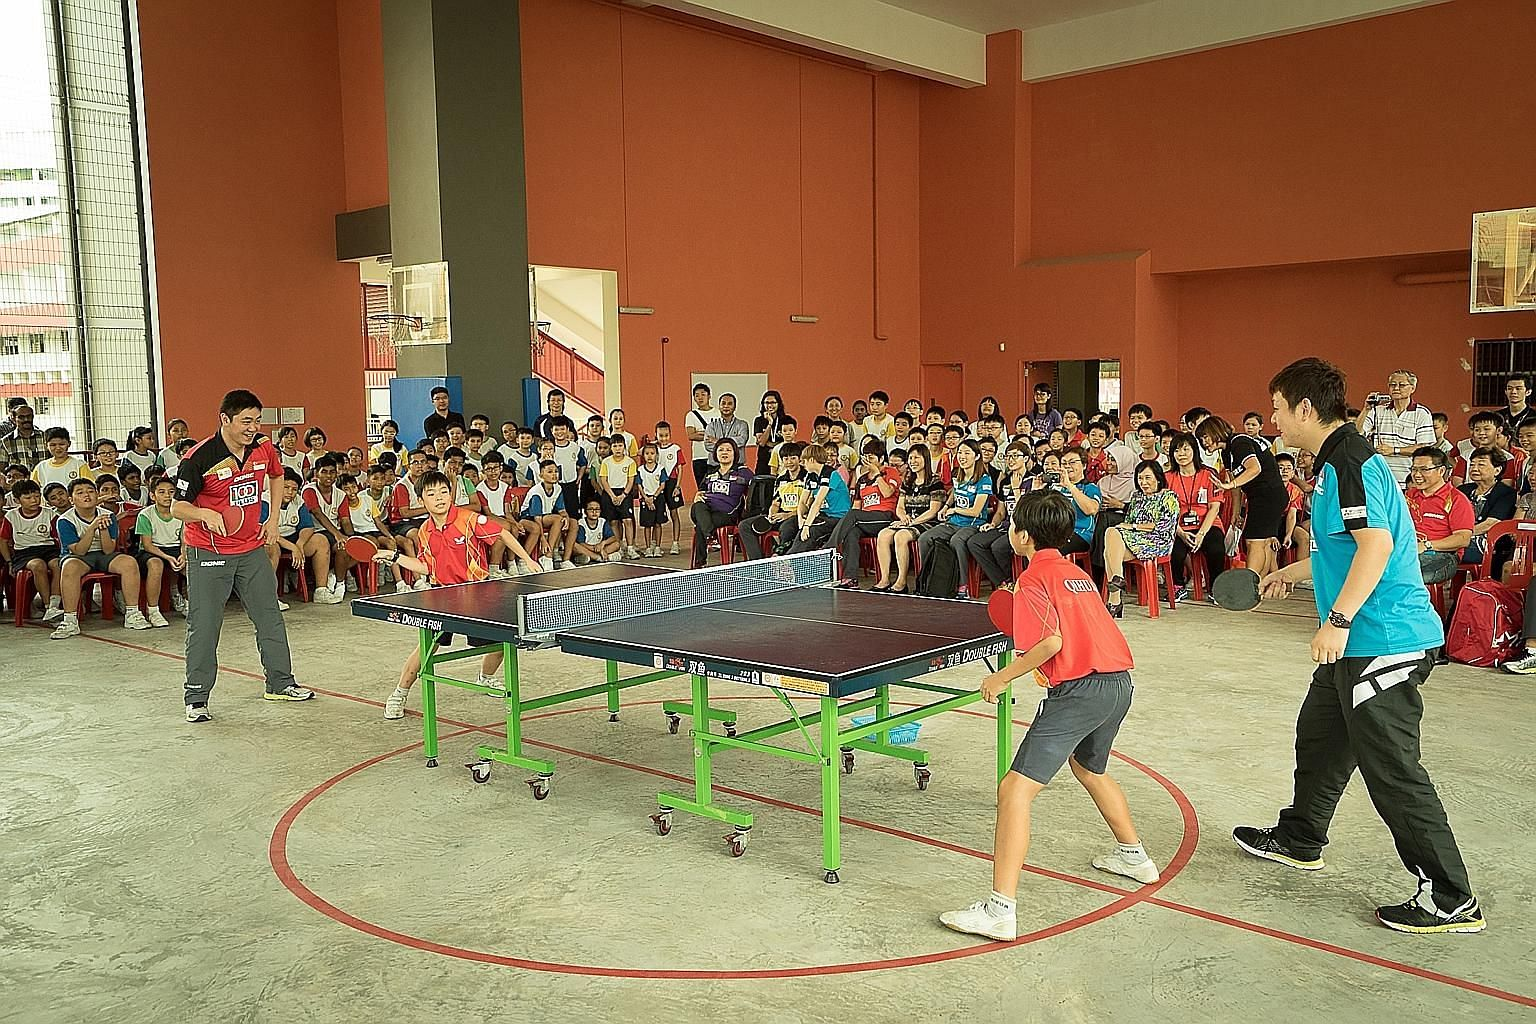 Gao Ning (left, in red jersey) and Li Hu (in blue), men's doubles champions at last month's SEA Games, were among the national table tennis players who spent time at Qi Hua Primary School yesterday. They sparred with pupils and taught them the import